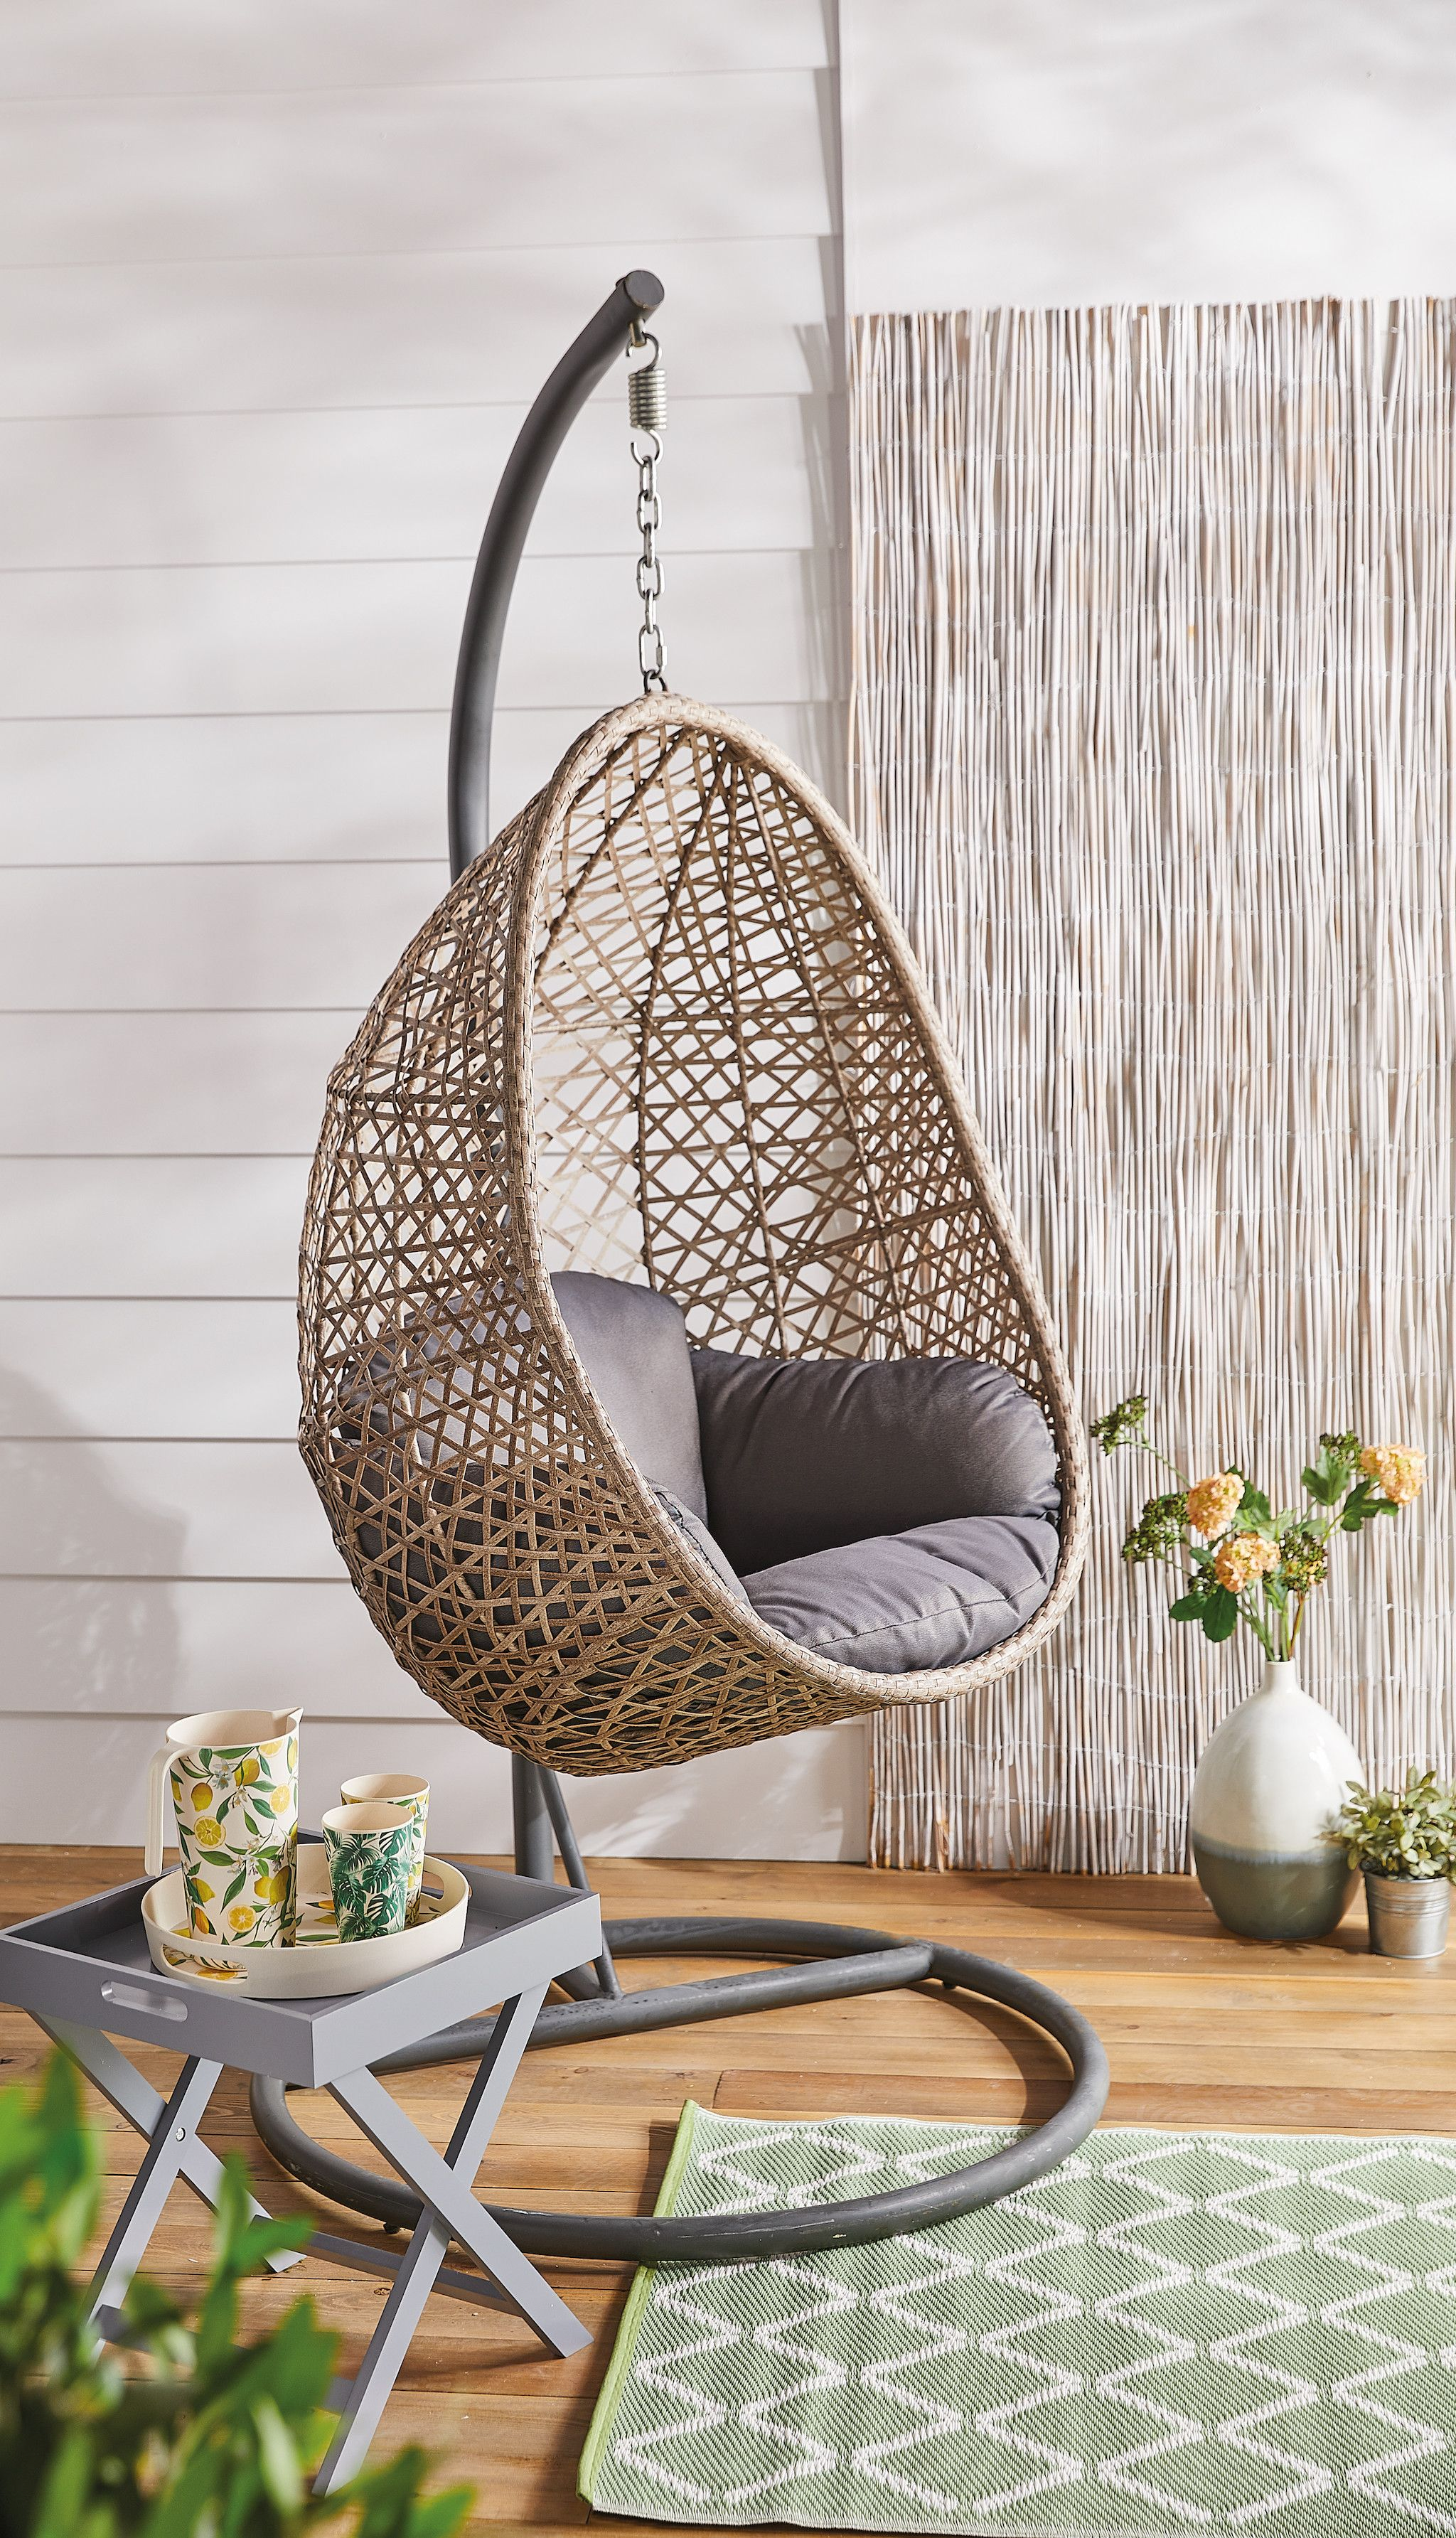 Rattan Egg Chair Set Rattan Swing Chair Aldi